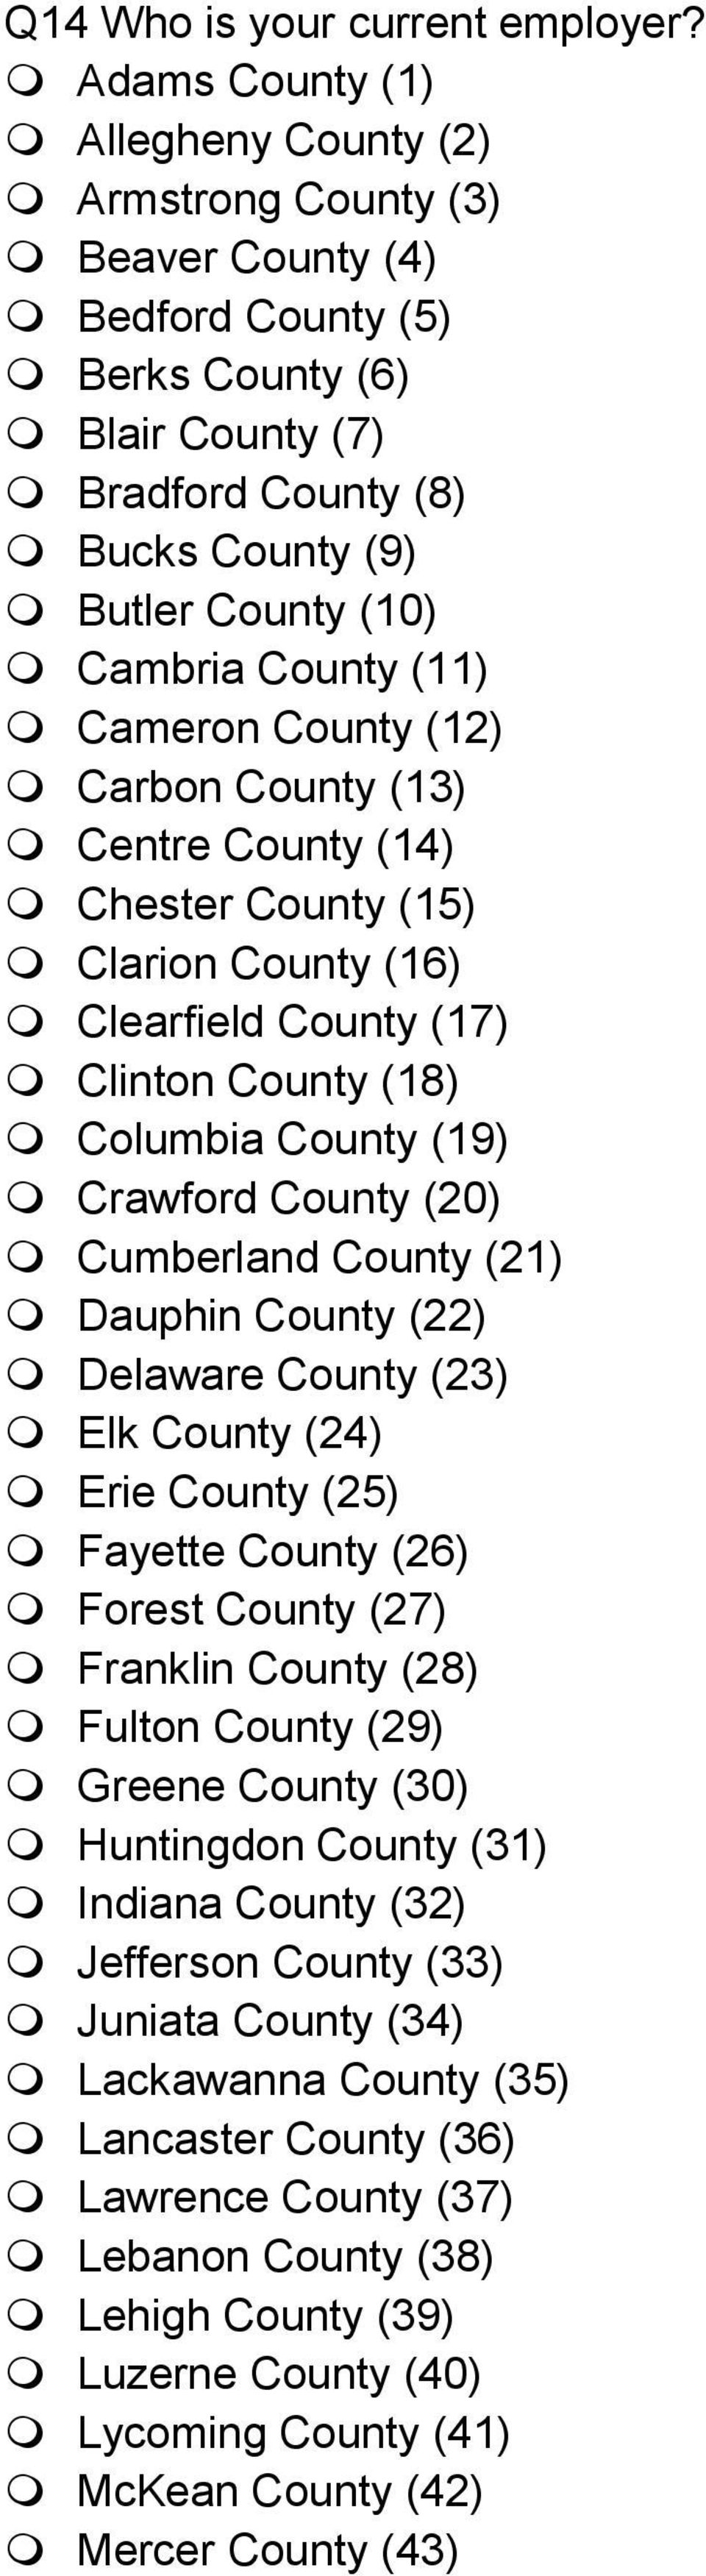 County (11) Cameron County (12) Carbon County (13) Centre County (14) Chester County (15) Clarion County (16) Clearfield County (17) Clinton County (18) Columbia County (19) Crawford County (20)